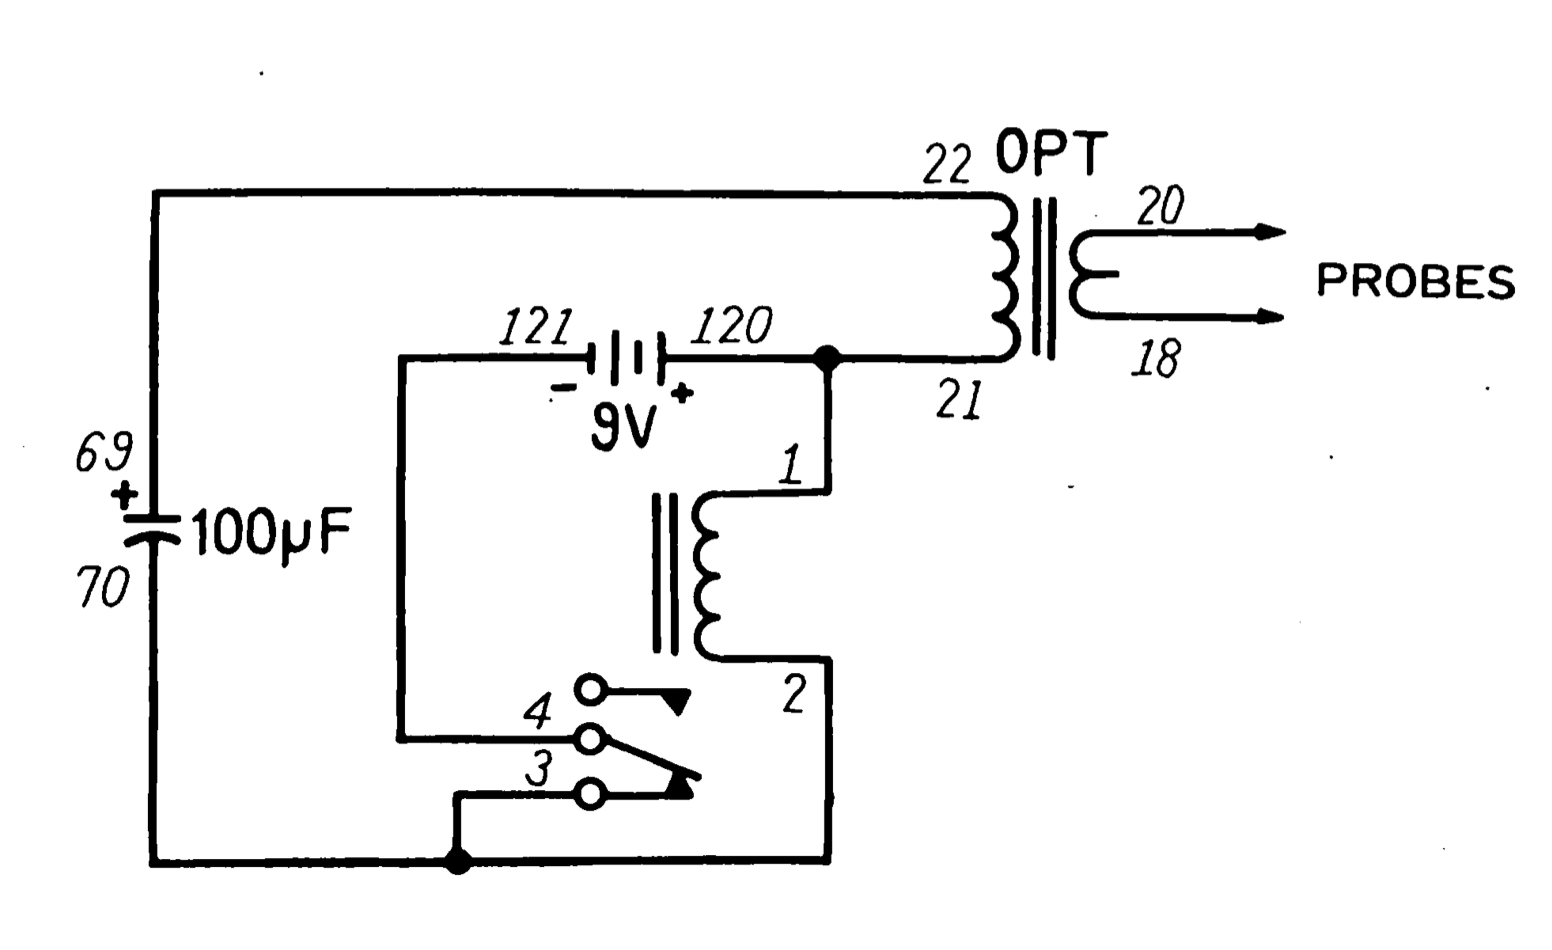 This opens the relay, breaking the circuit, therefore cutting power to the  coil ...